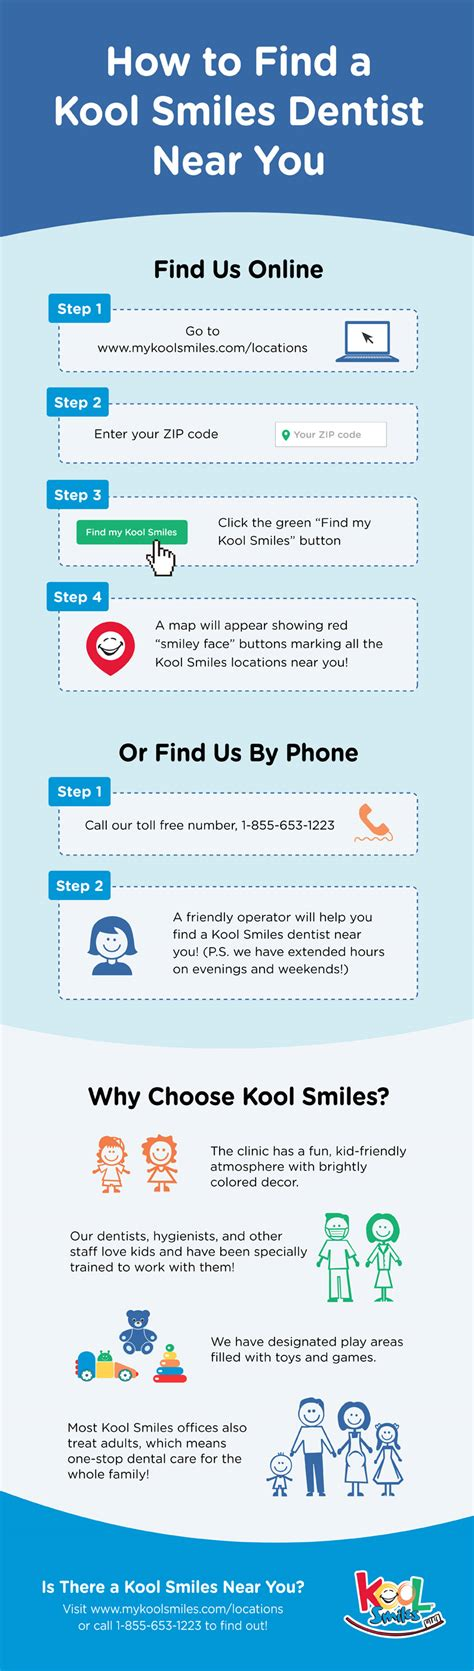 How To Find Near You How To Find A Kool Smiles Dentist Near You Infographic Kool Smiles Kool